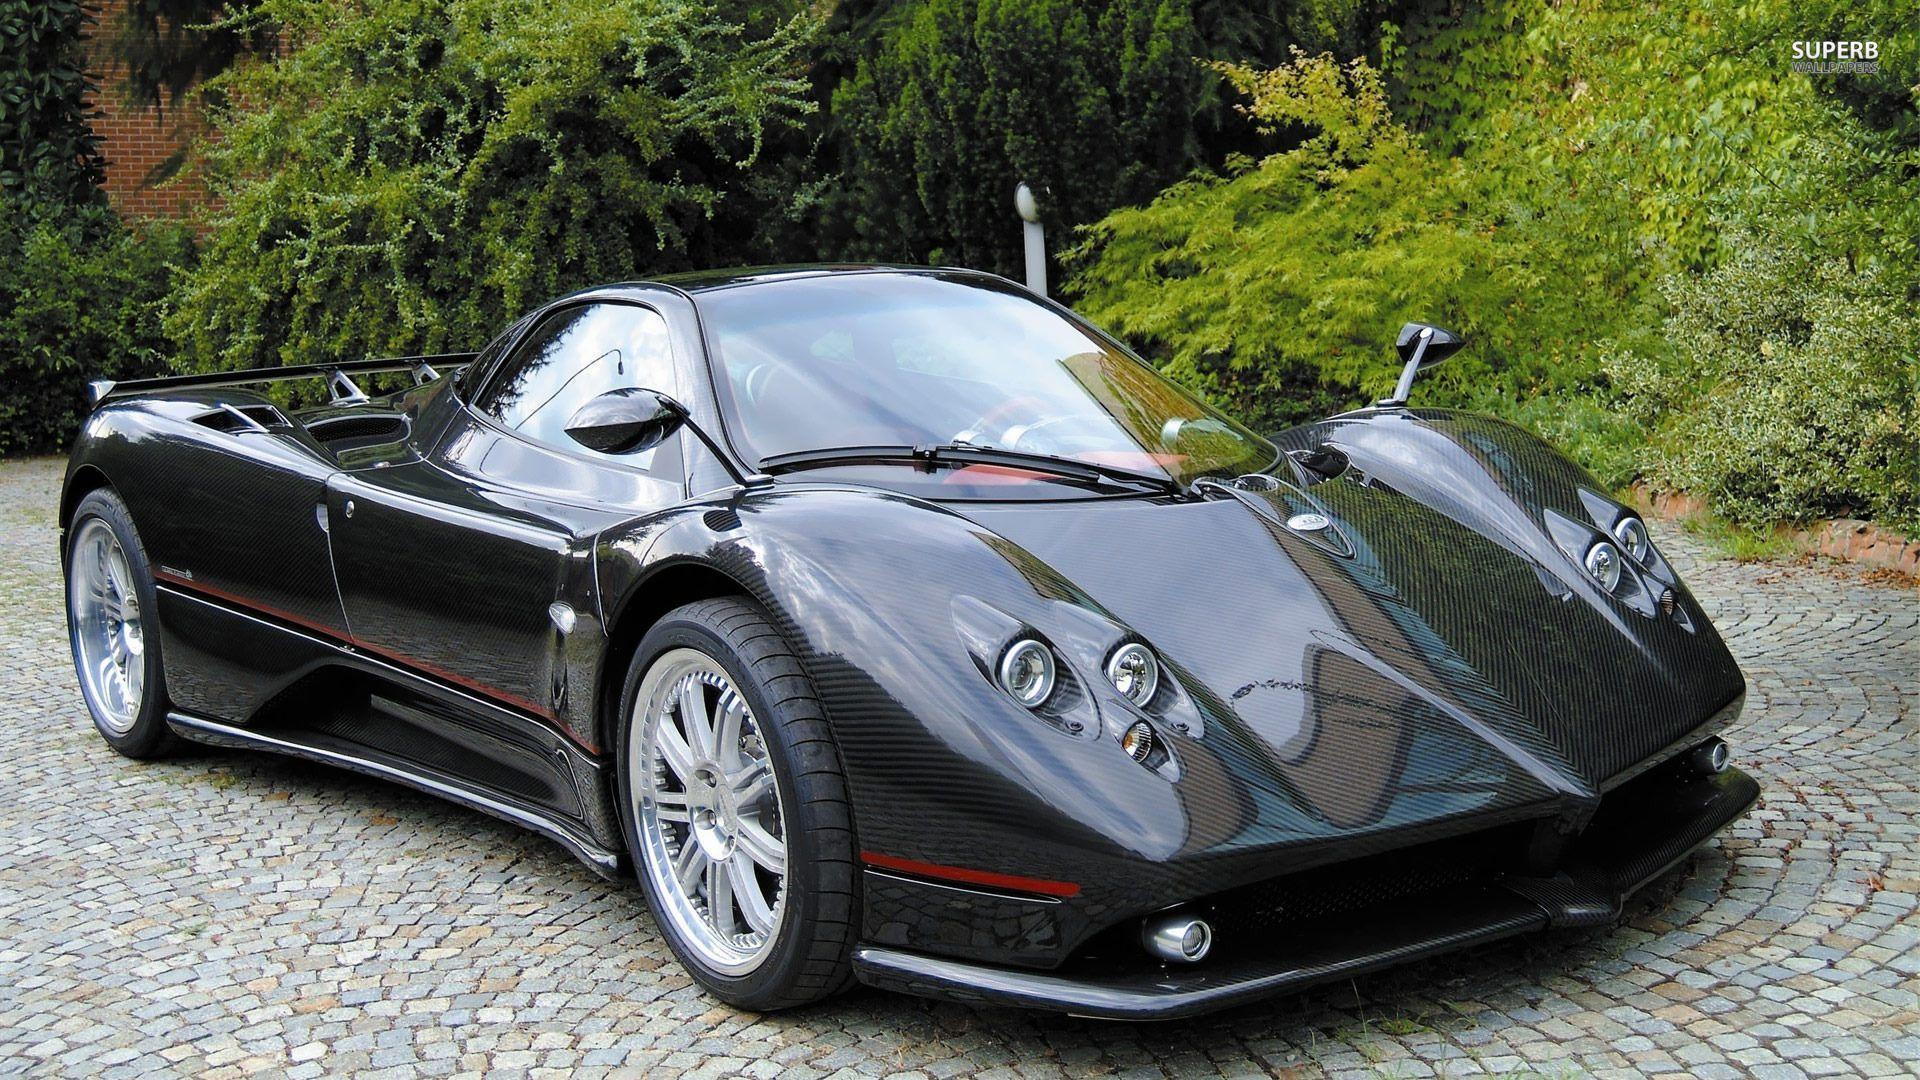 Pagani Zonda F Wallpapers - Wallpaper Cave